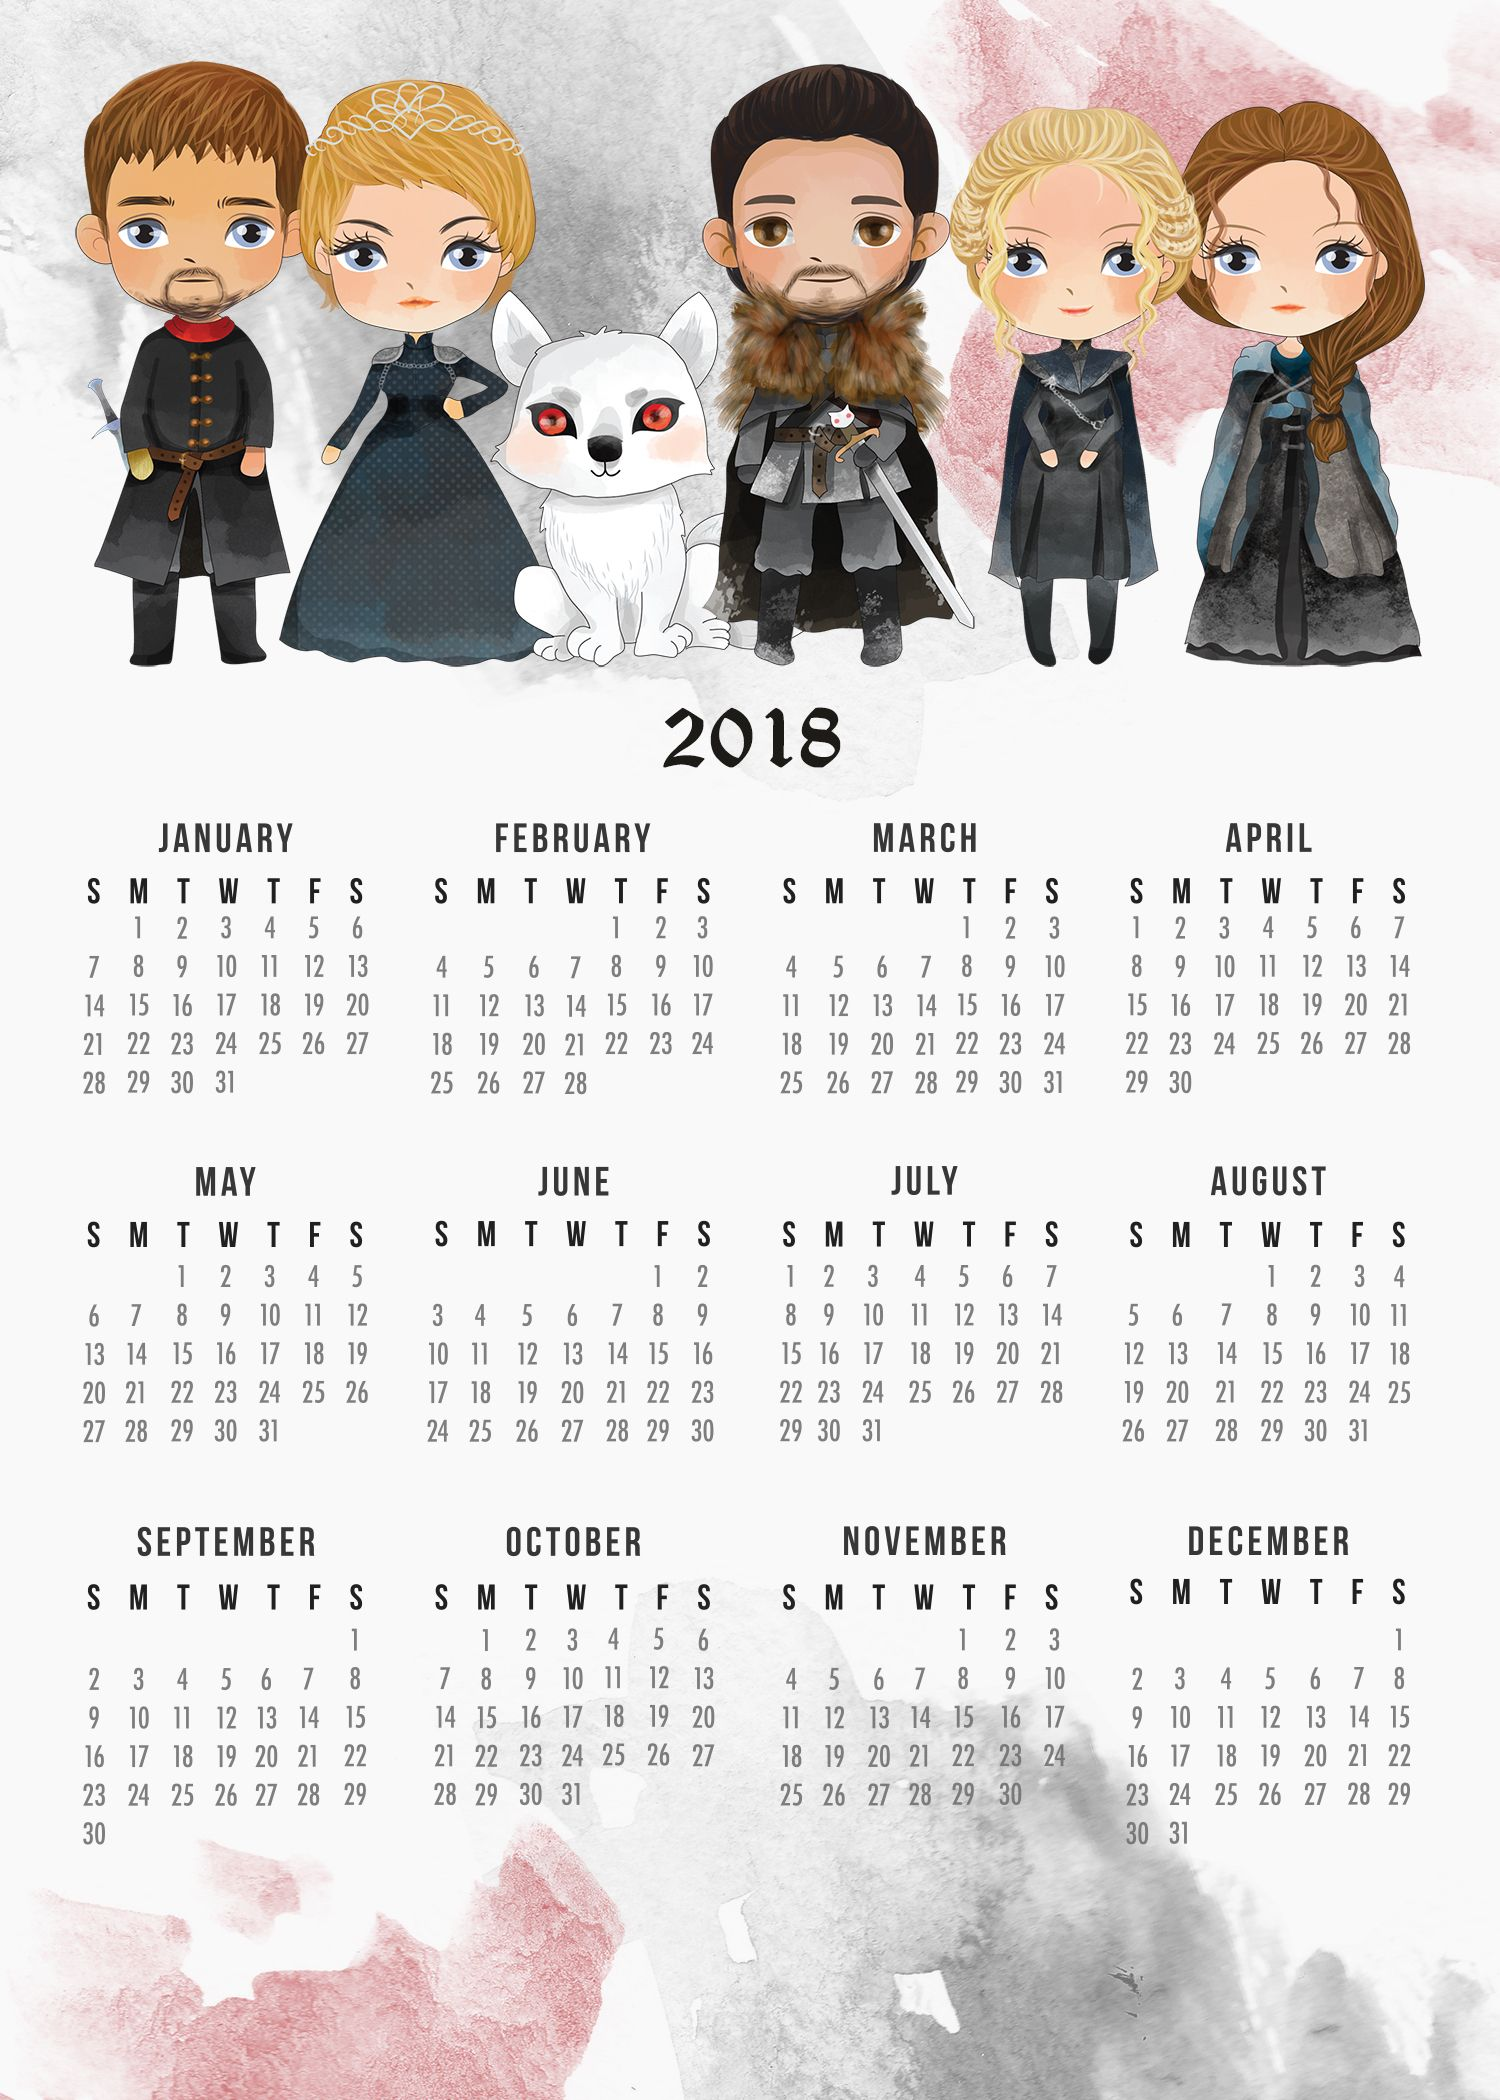 Free Printable 2018 Game of Thrones Calendar | Pinterest | Free